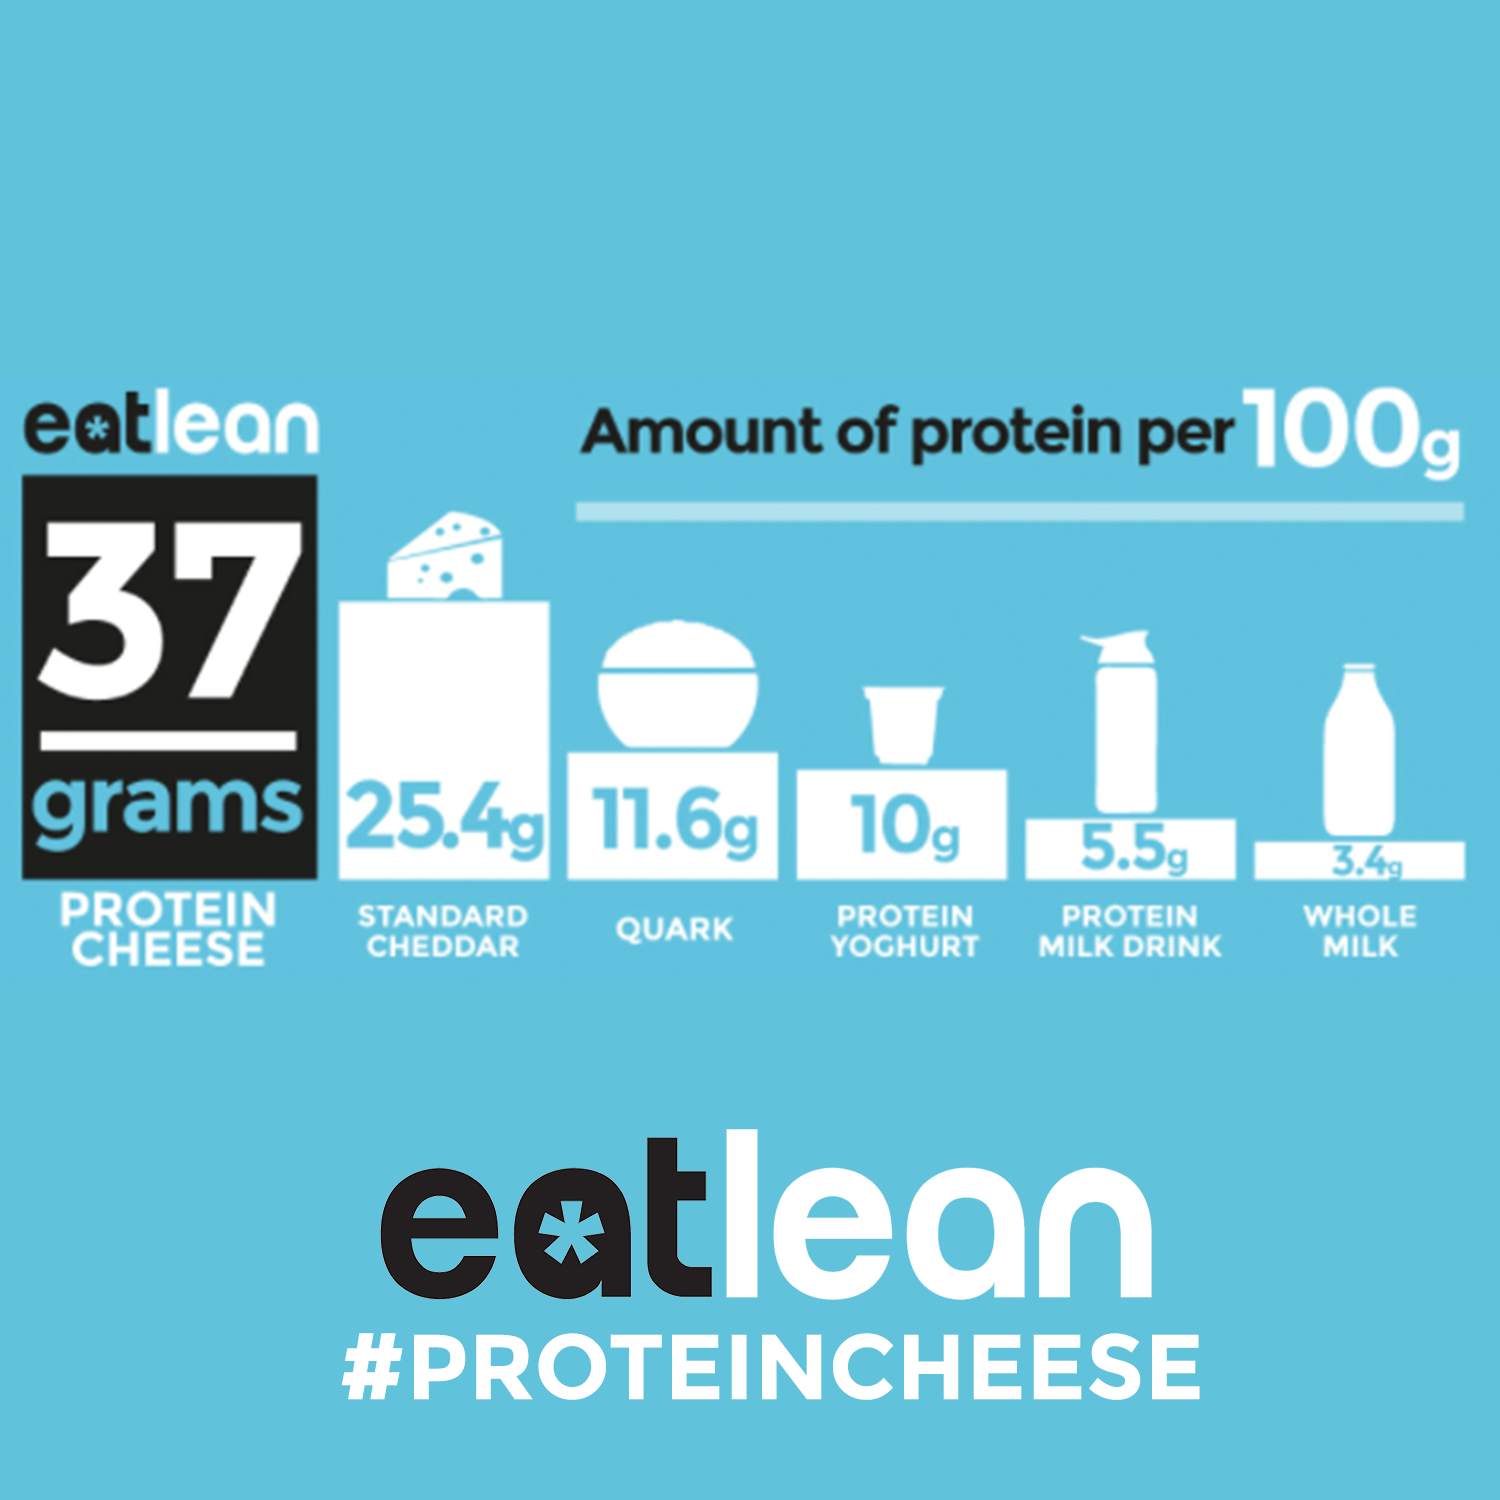 Graph showing the amount of Protein per 100g with Eatlean leading the way